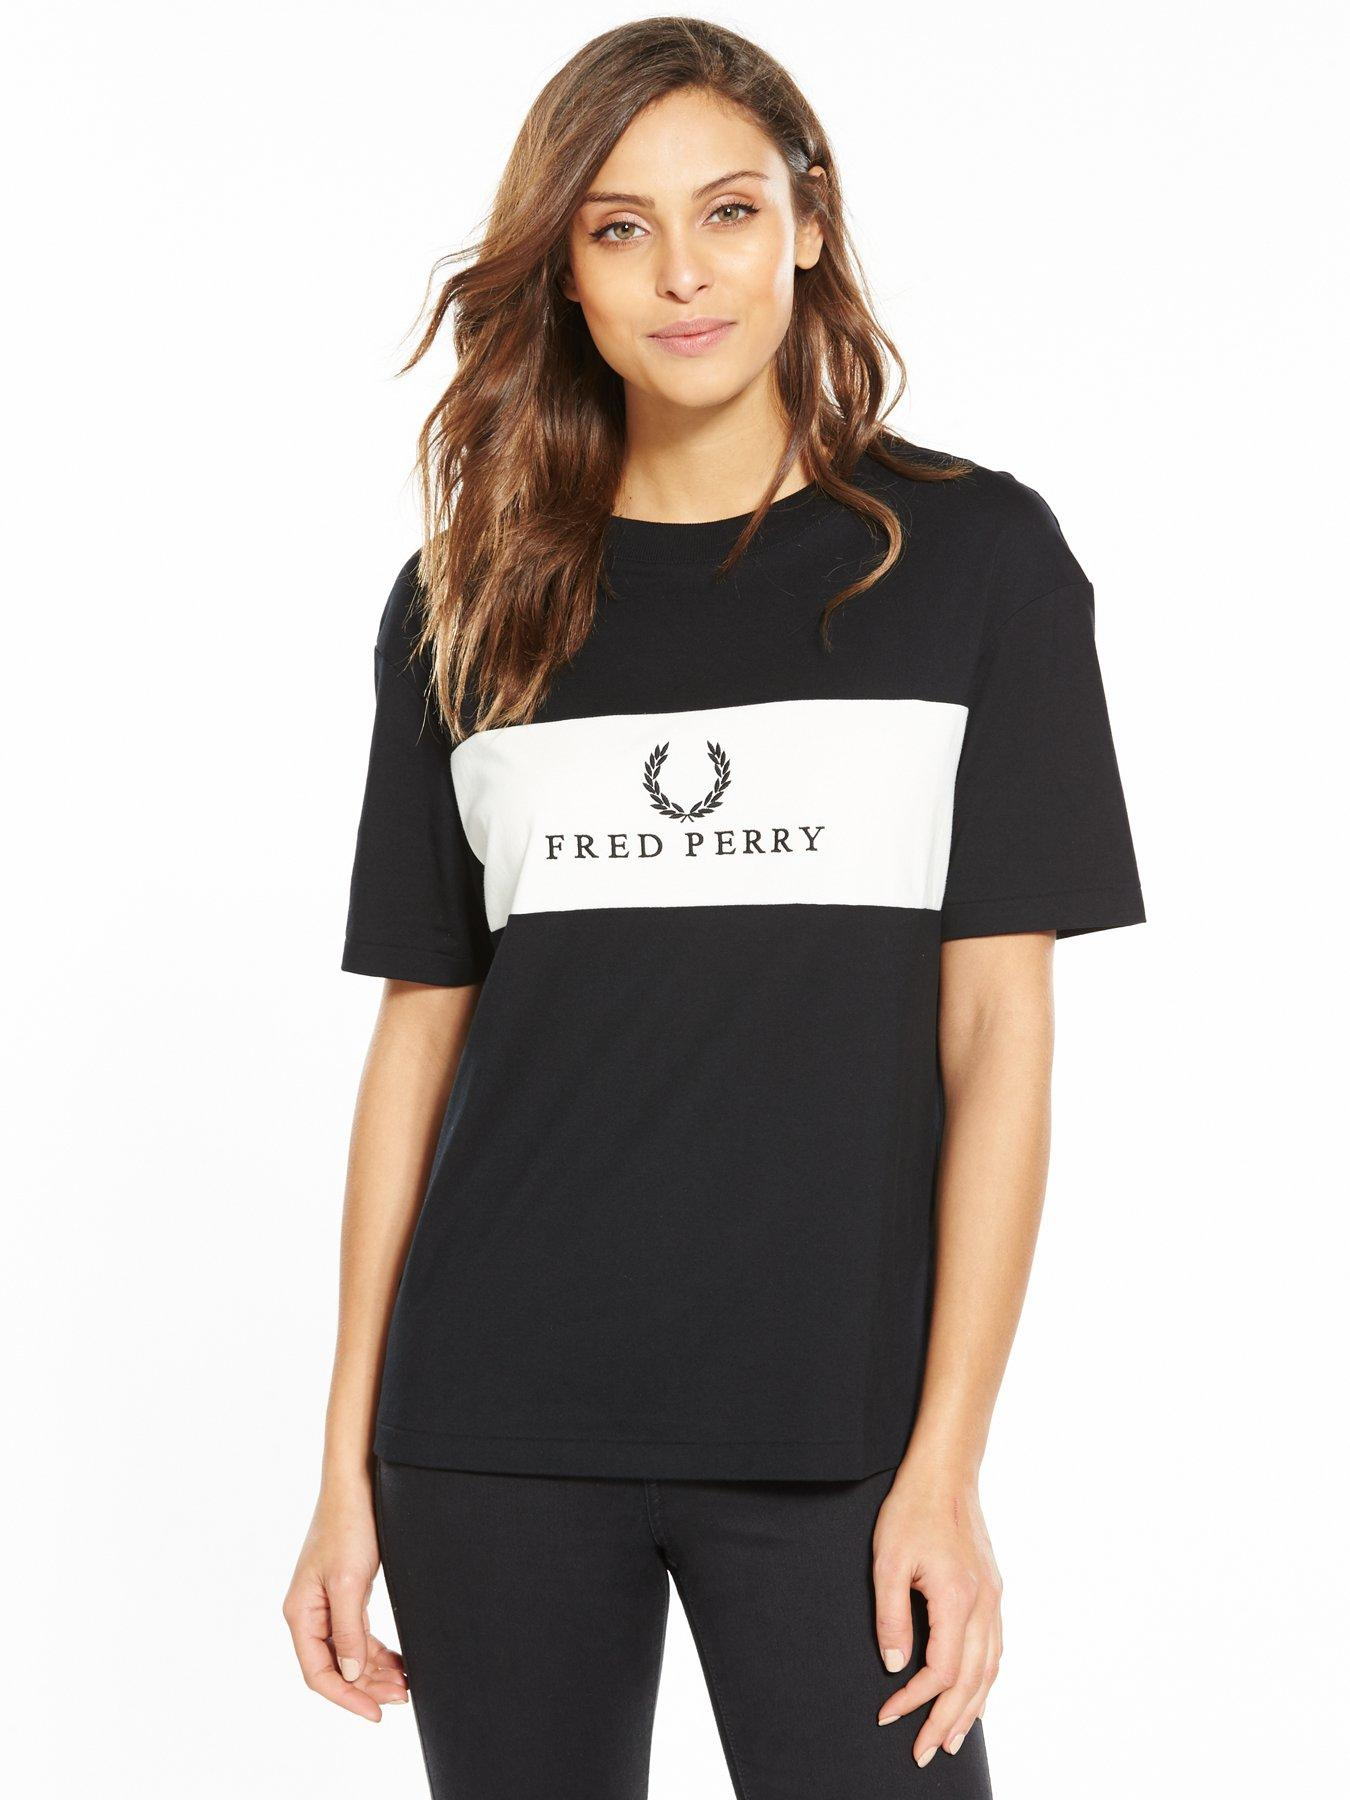 fred perry t shirt women